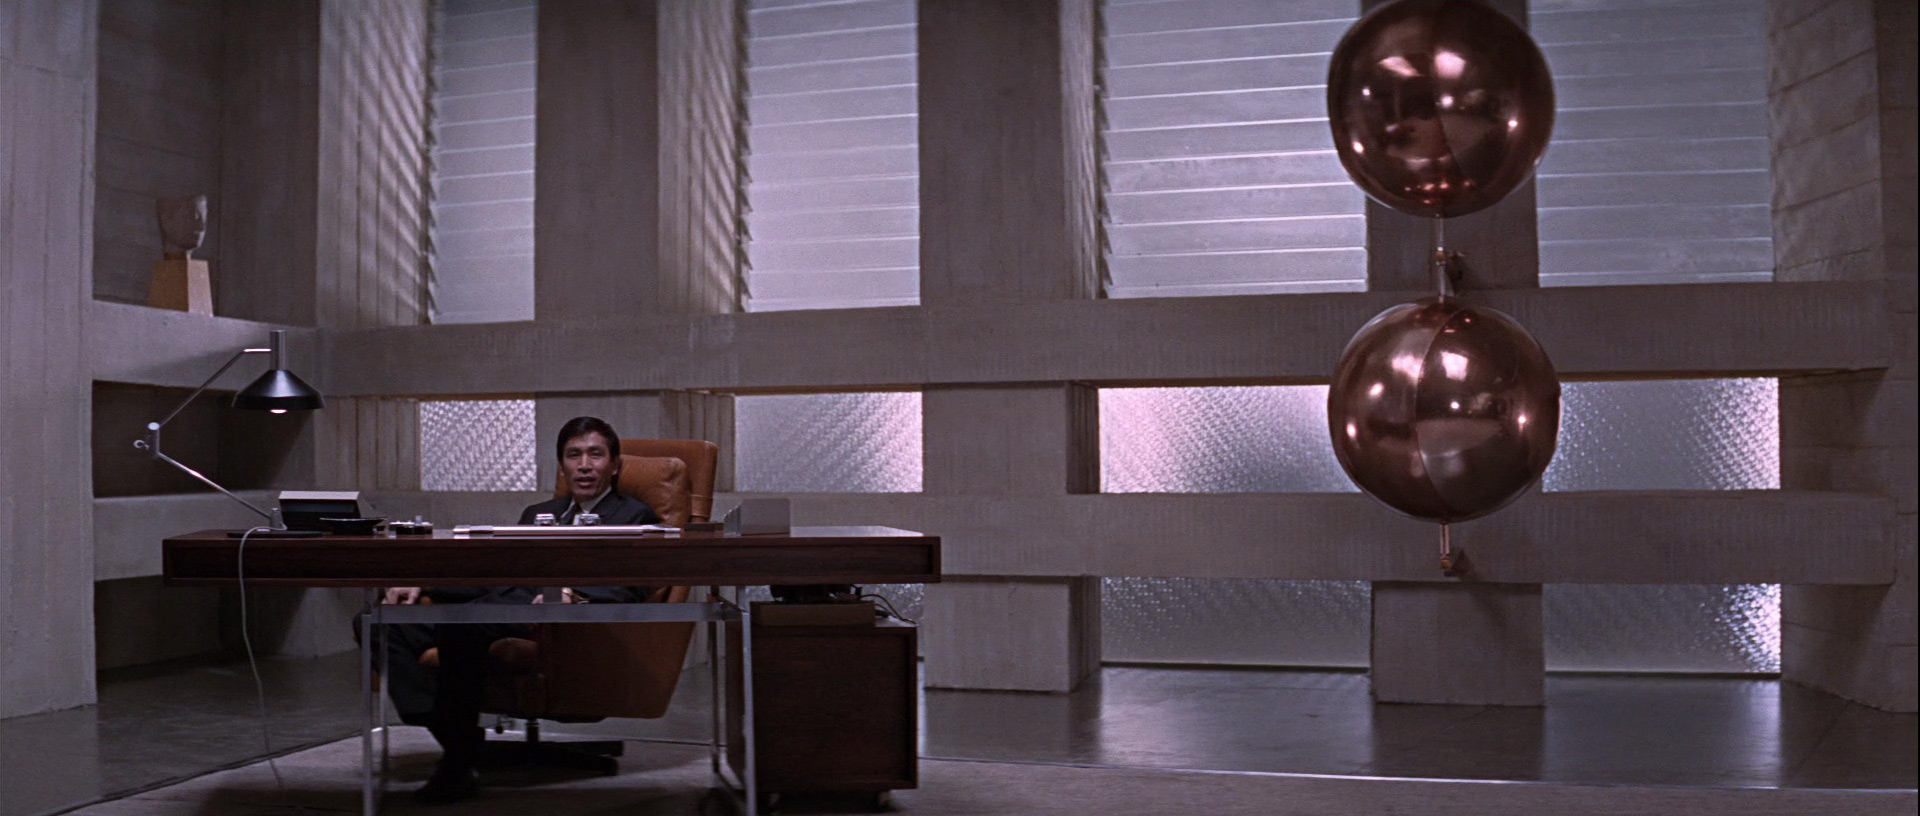 The Bodil Kjaer desk in the Bond movie You Only Live Twice